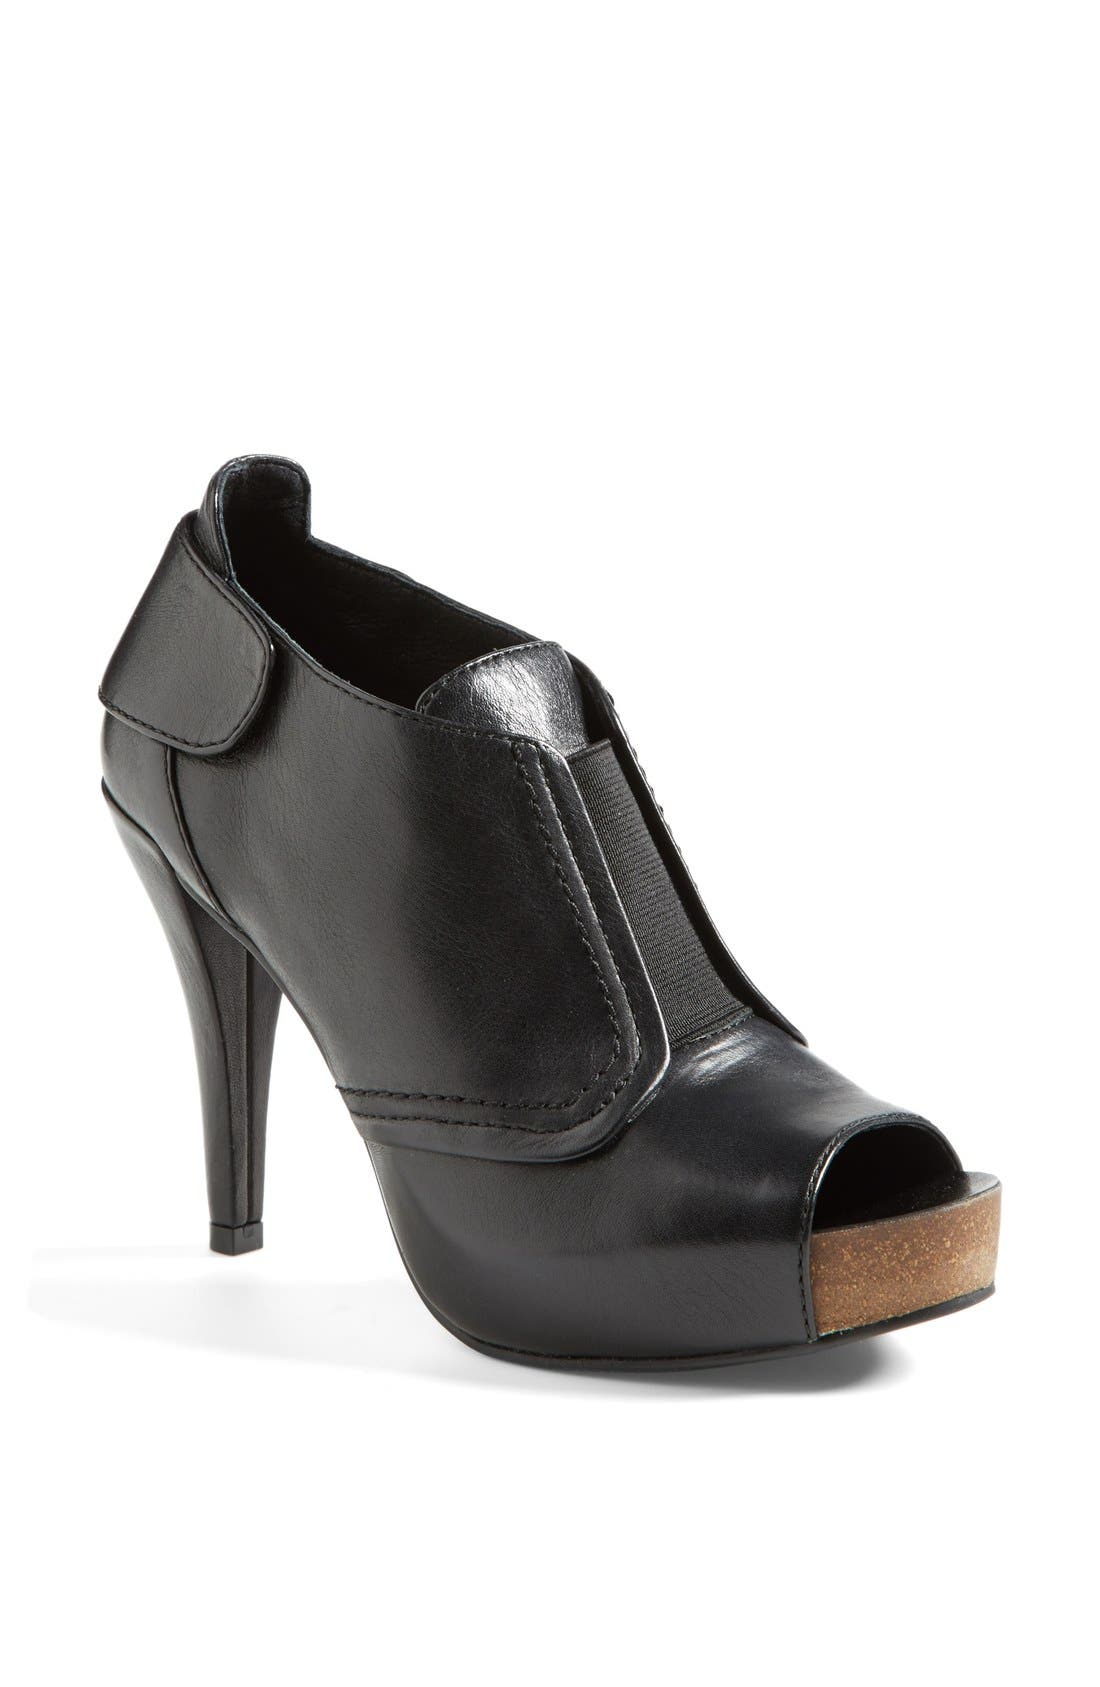 Alternate Image 1 Selected - Vince Camuto 'Pernot' Peep Toe Bootie